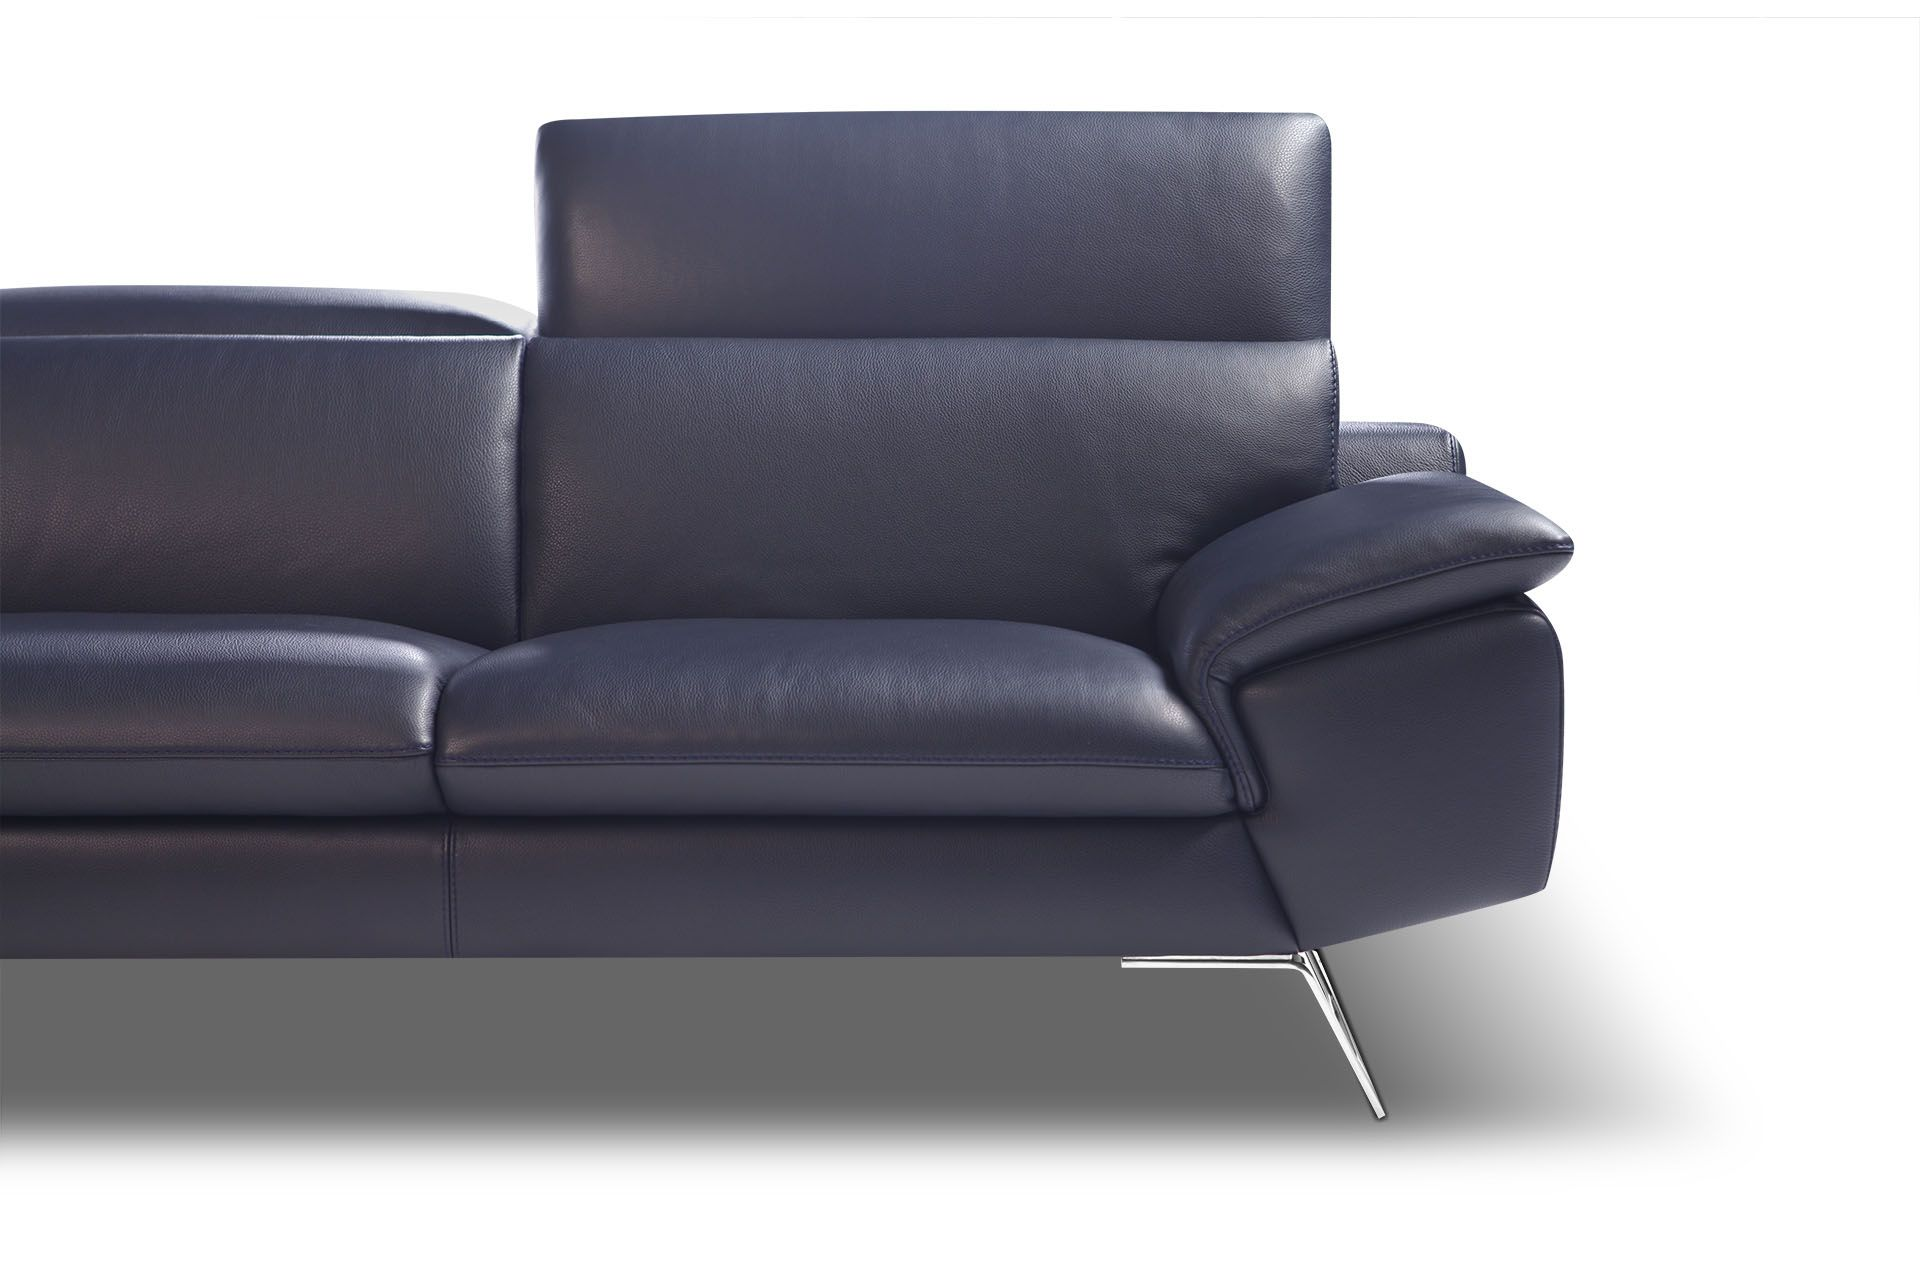 Zuma Nicoletti Home Sofa furniture Pinterest